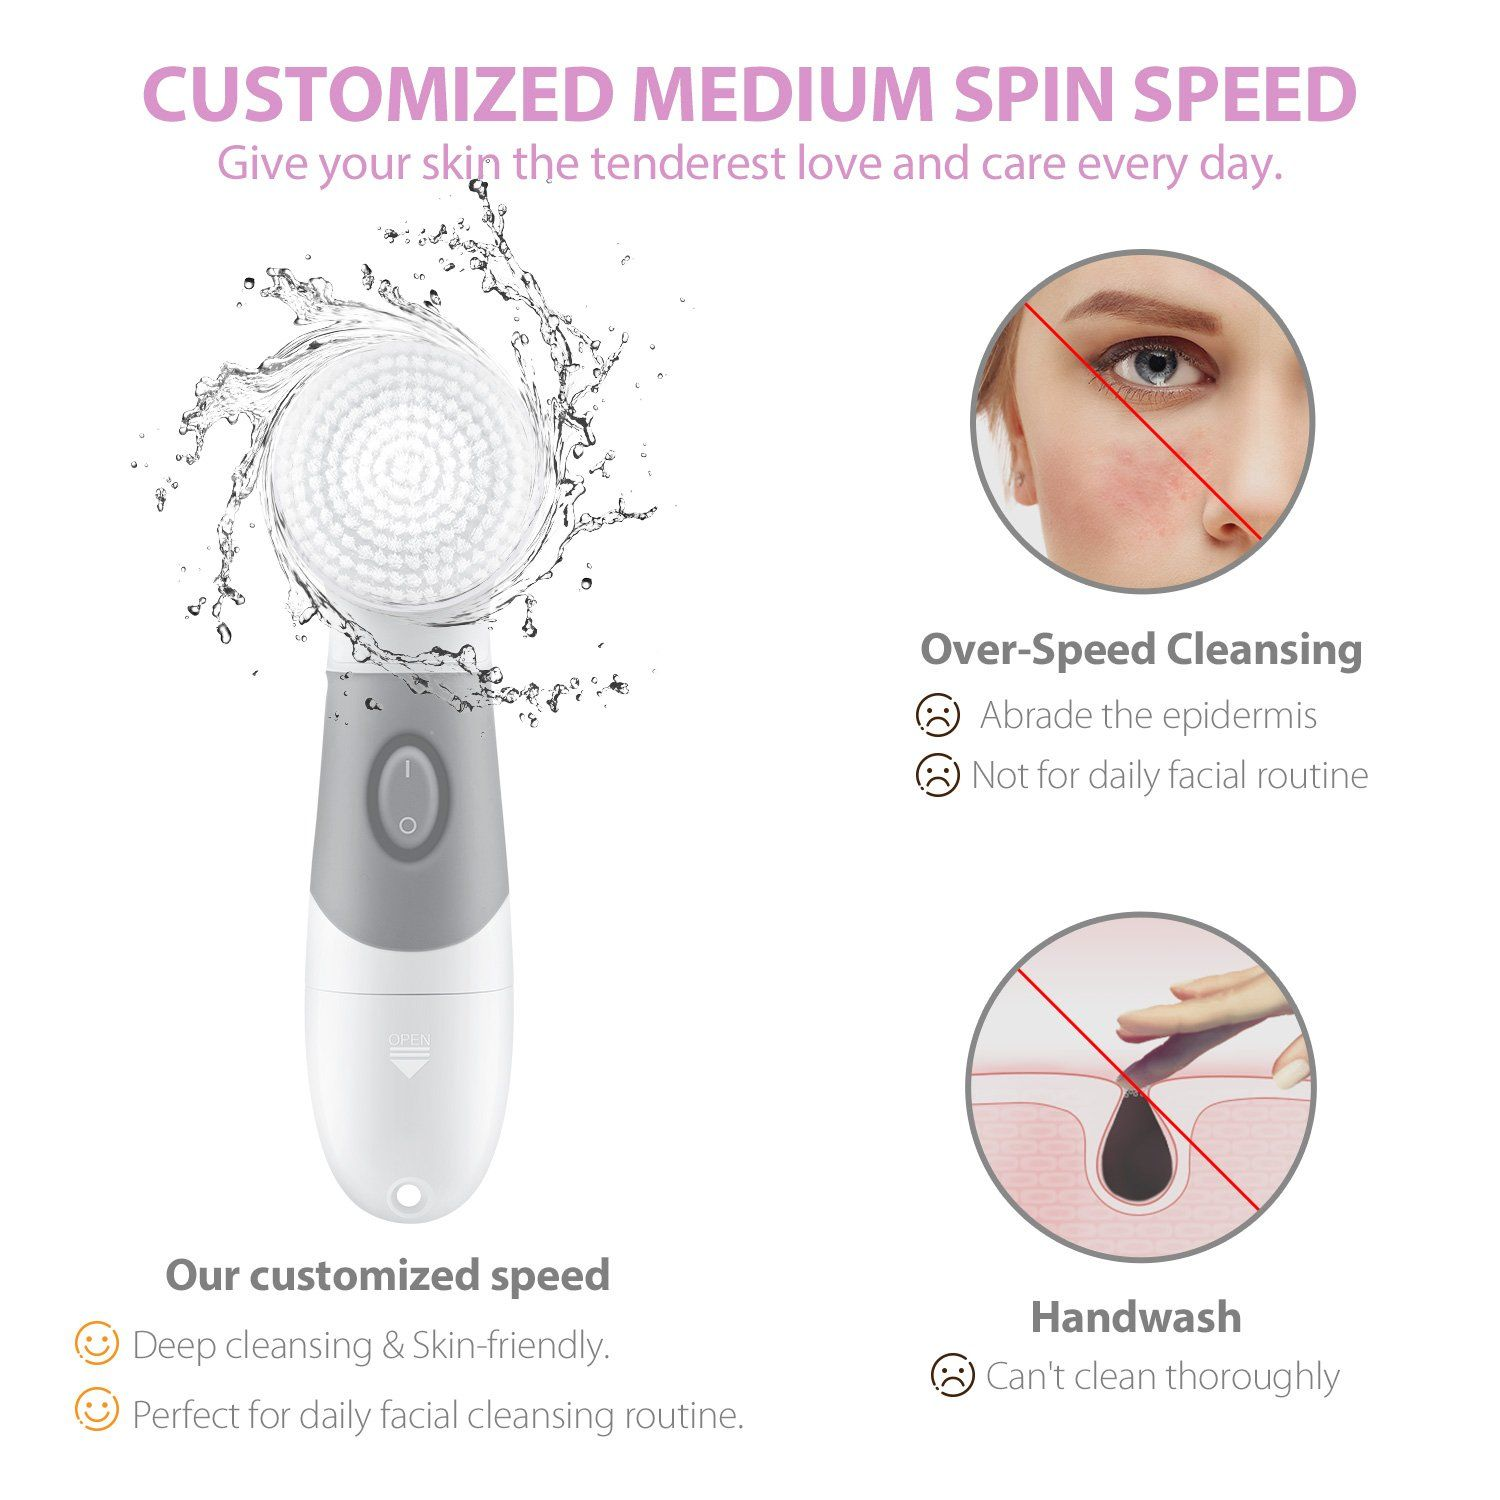 Facial Brush Body Skin Cleansing System Spin Brush For Face And Body Deep Cleansing Gentle Exfoliator Sk Facial Cleansing Brush Cleansing Brush Spin Brush Face